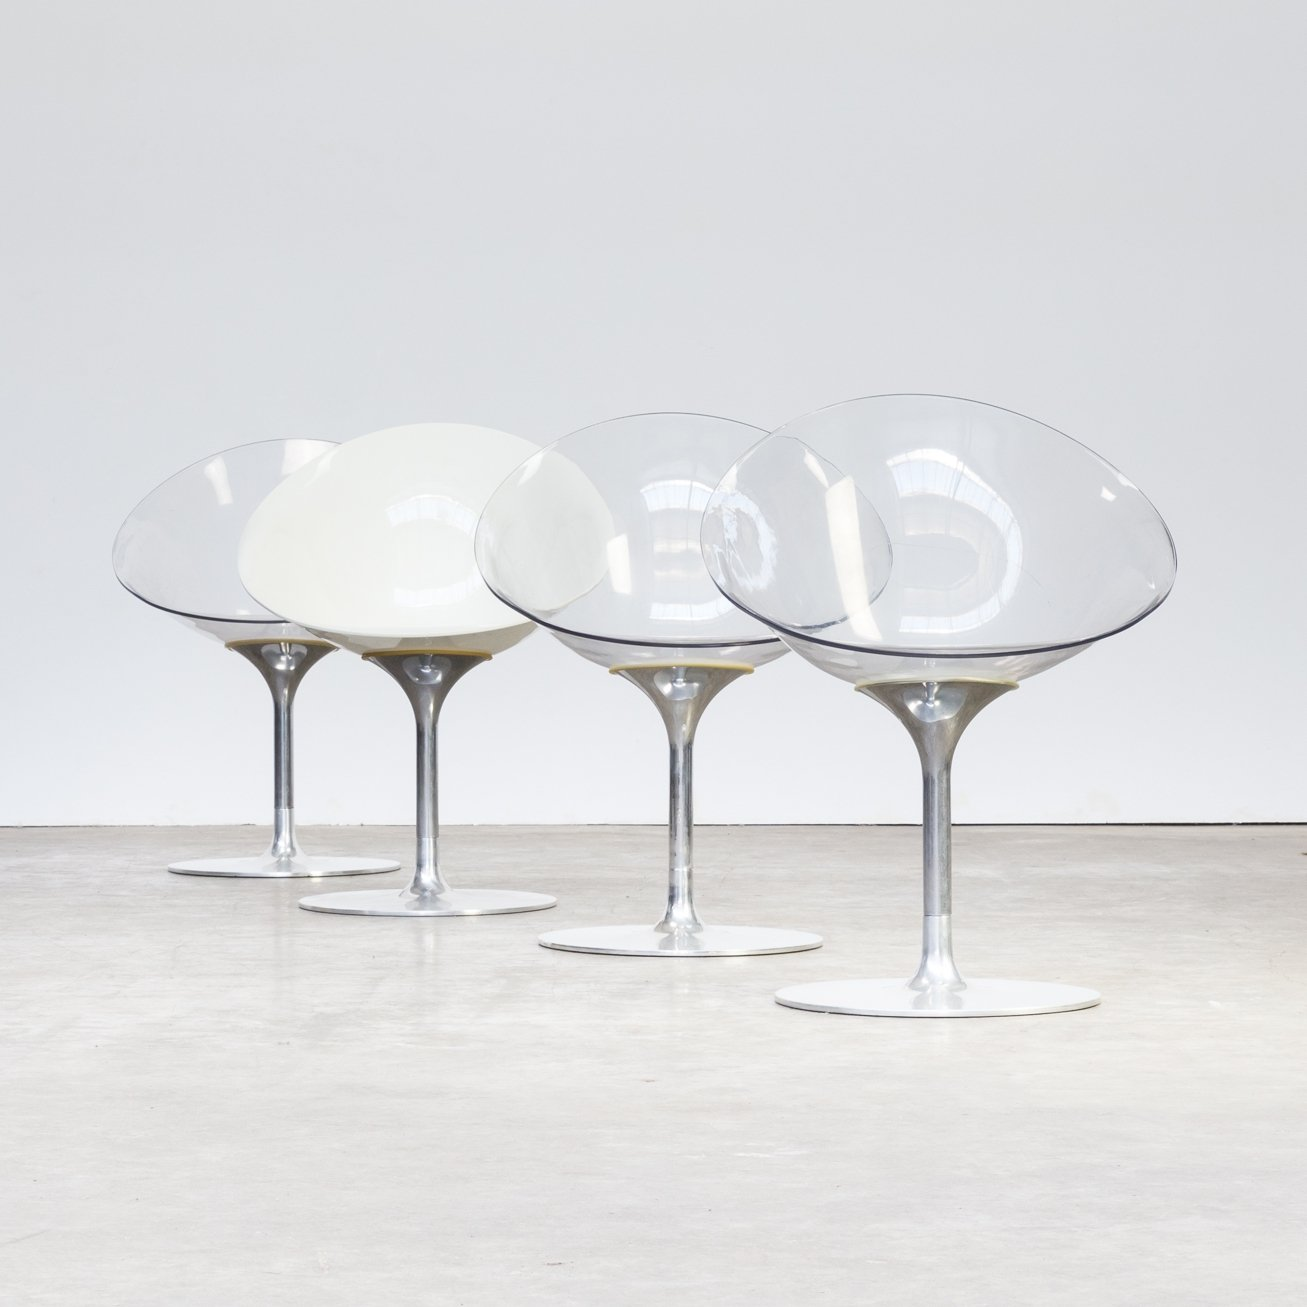 Philip Starck Set Of 4 Philippe Starck Ero S Chairs For Kartell 1970s